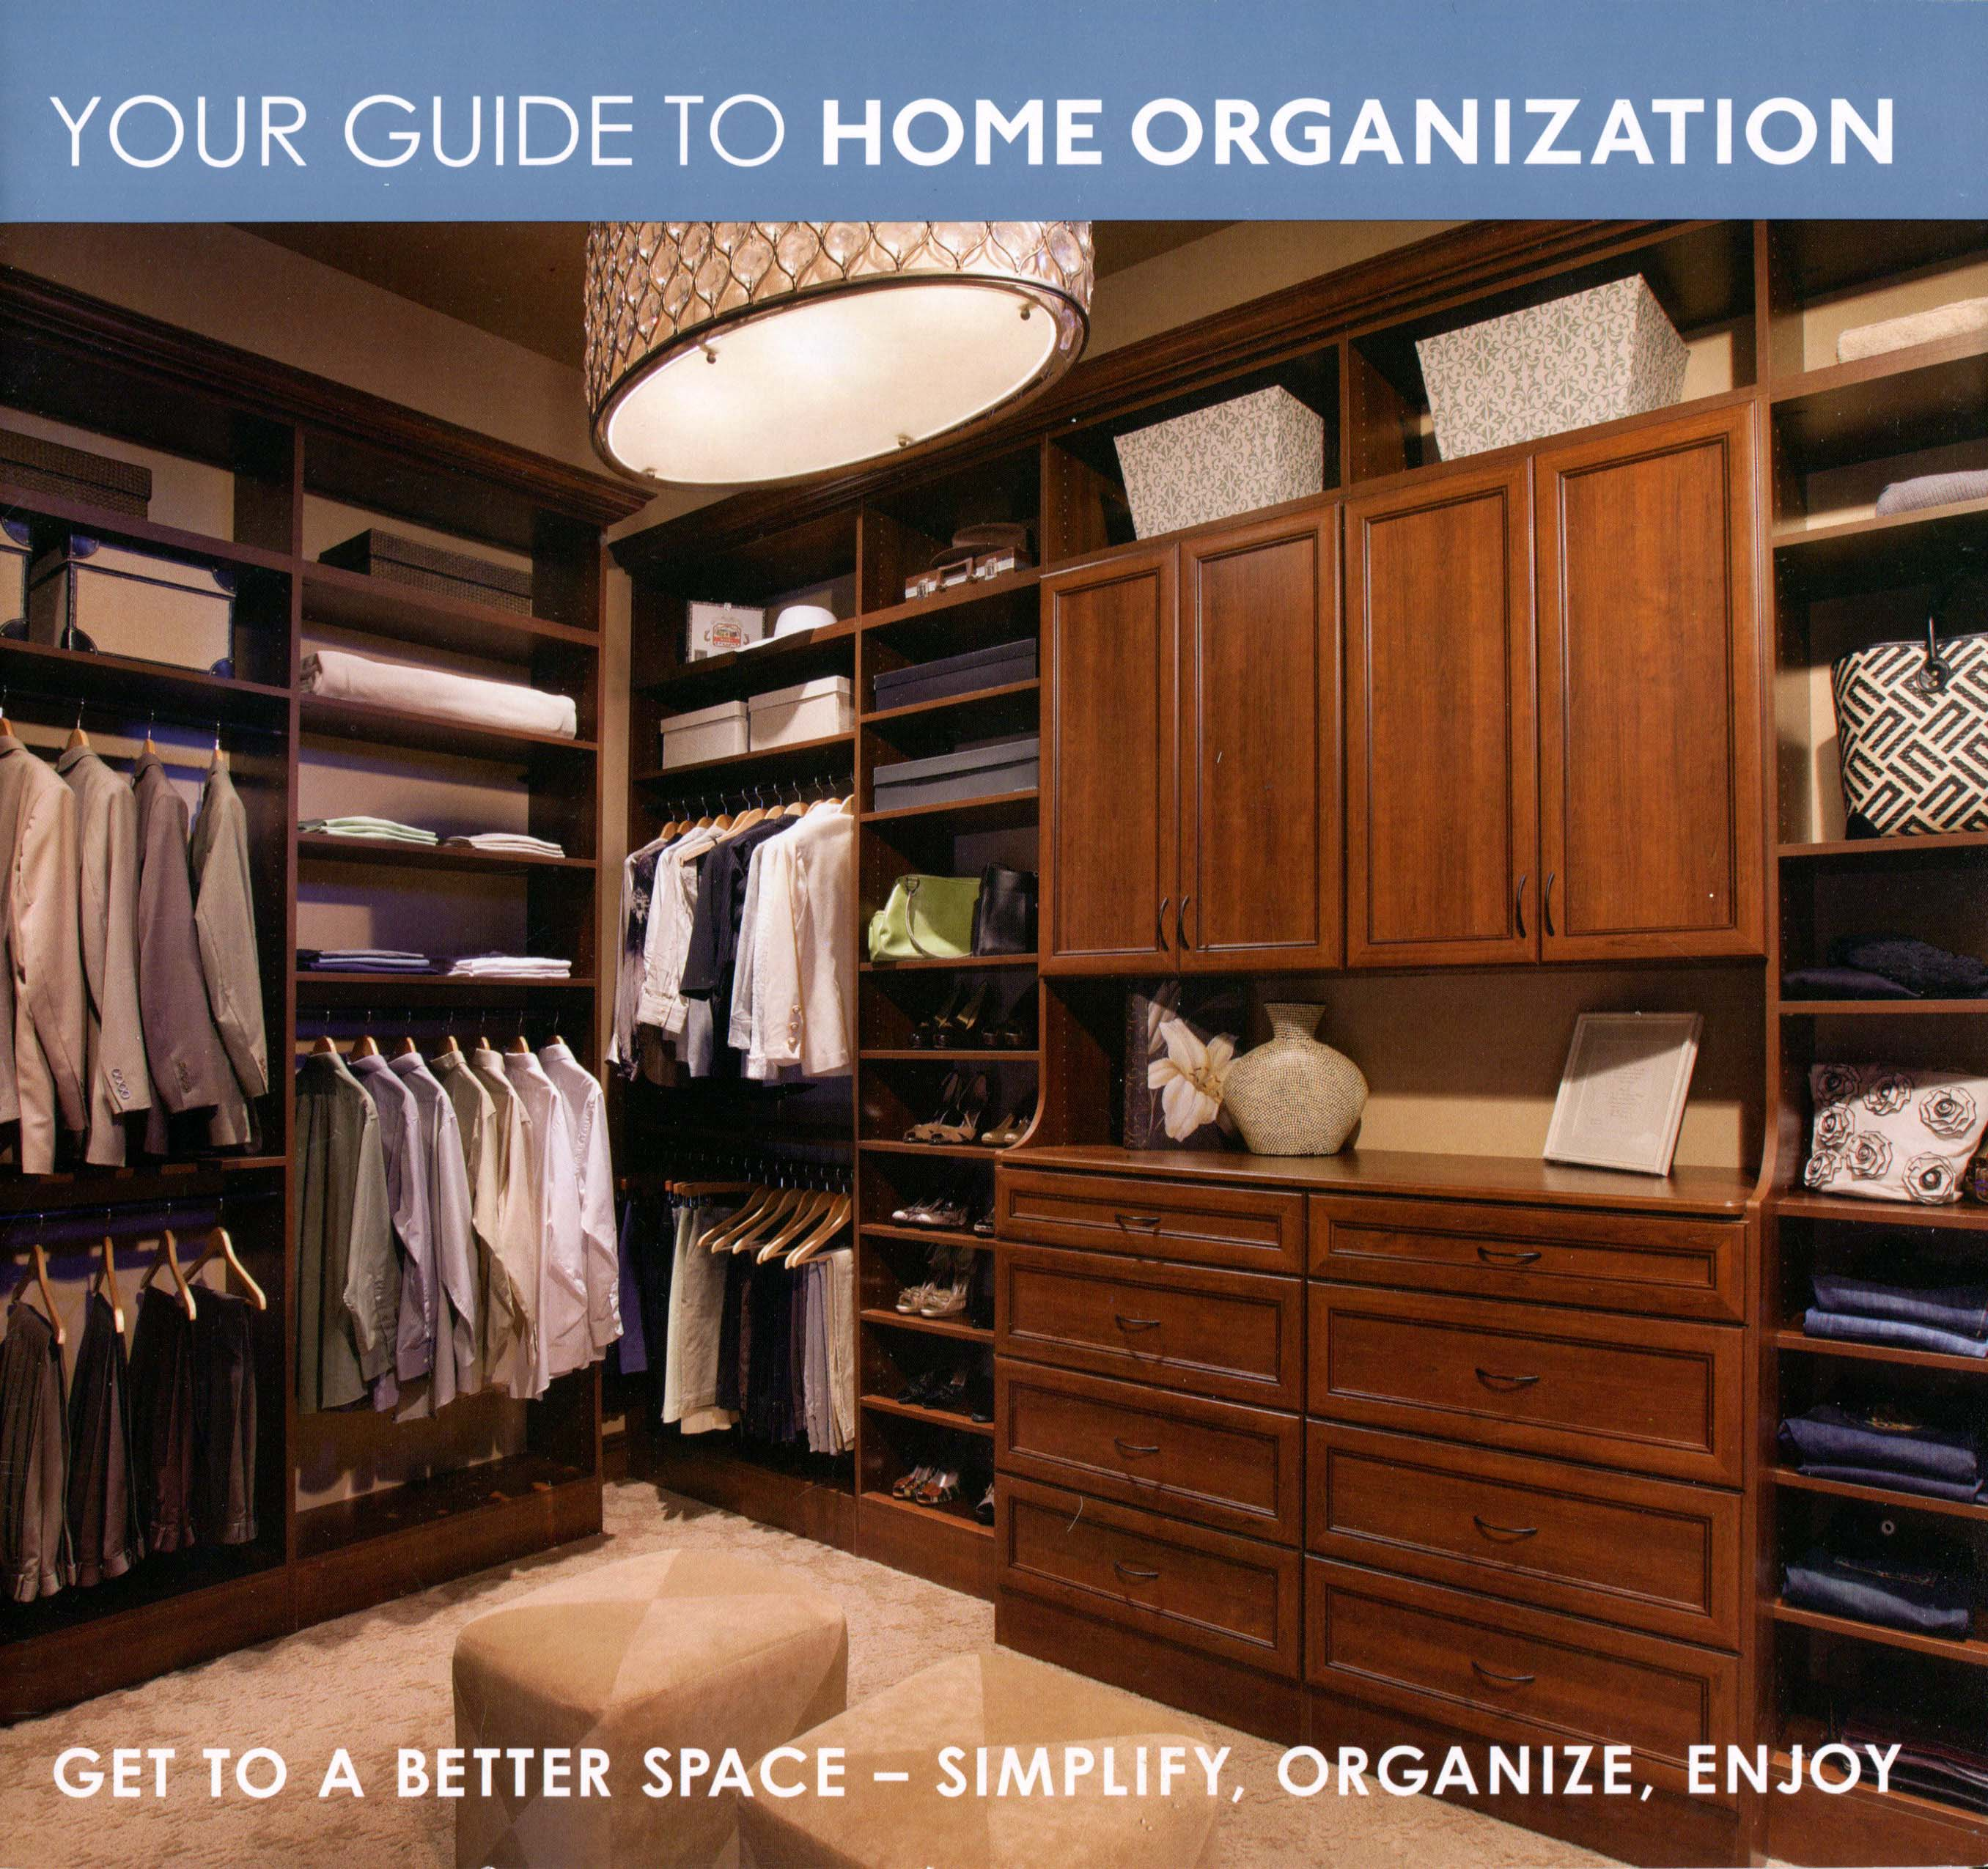 Your guide to home organization.